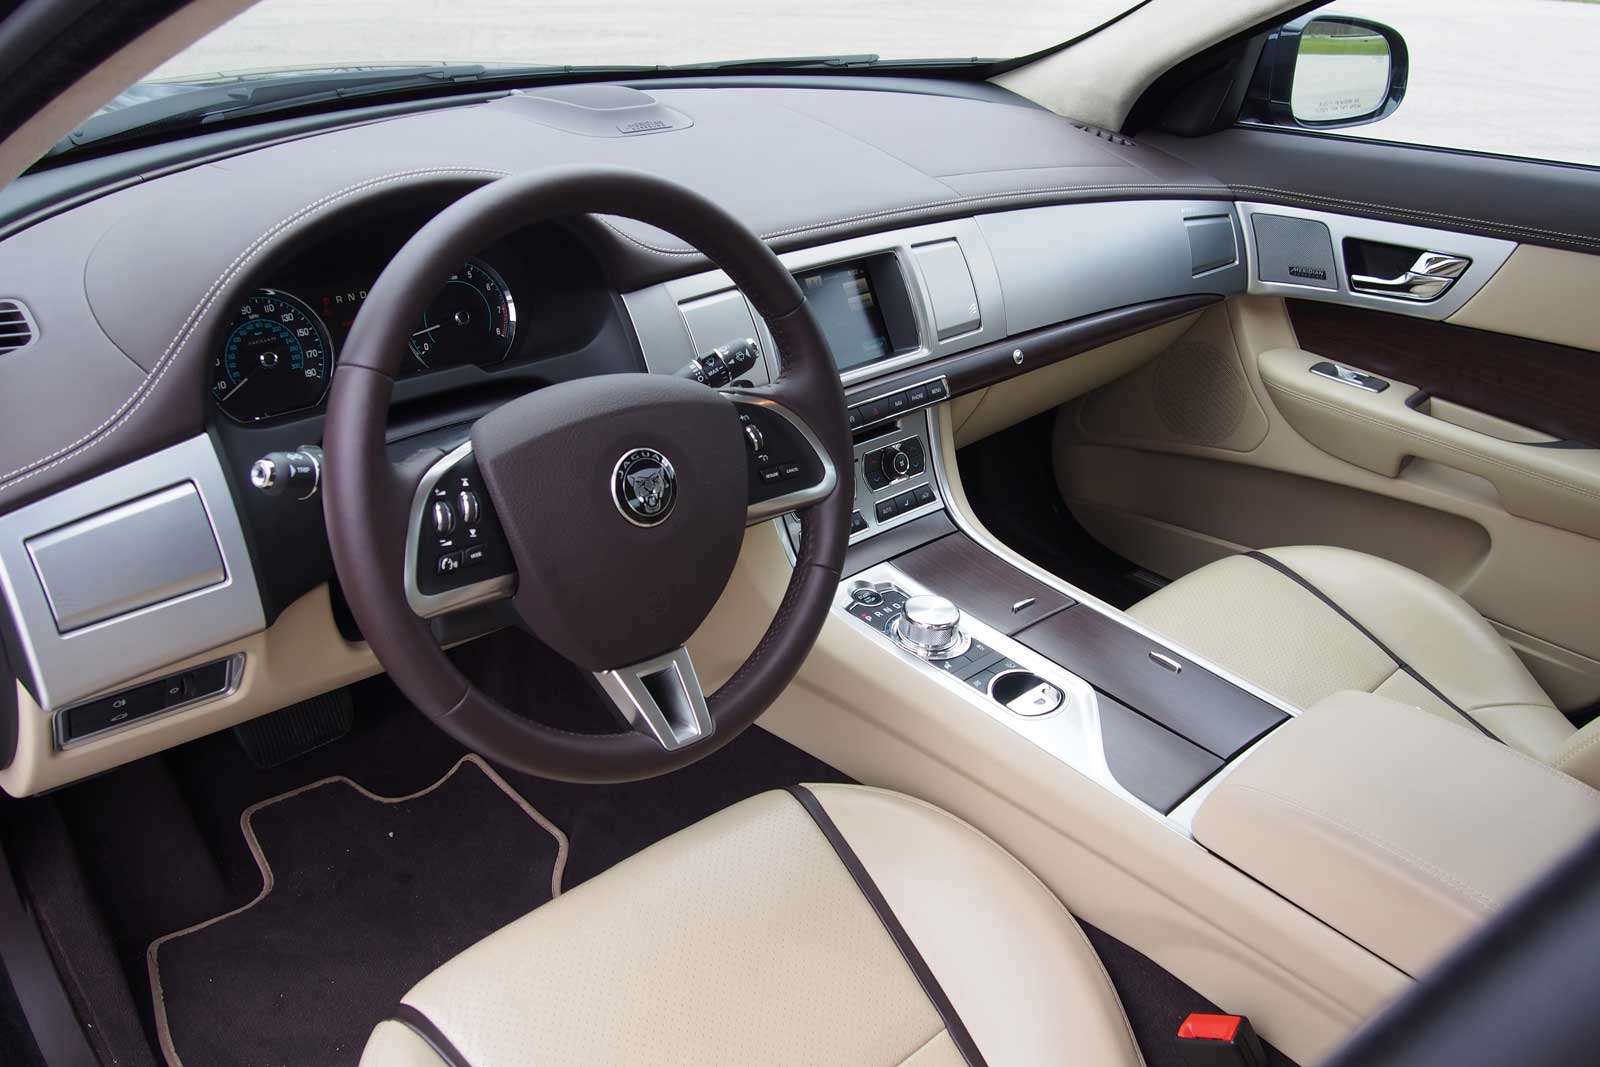 Jaguar xf 2015 interior images for Interior images